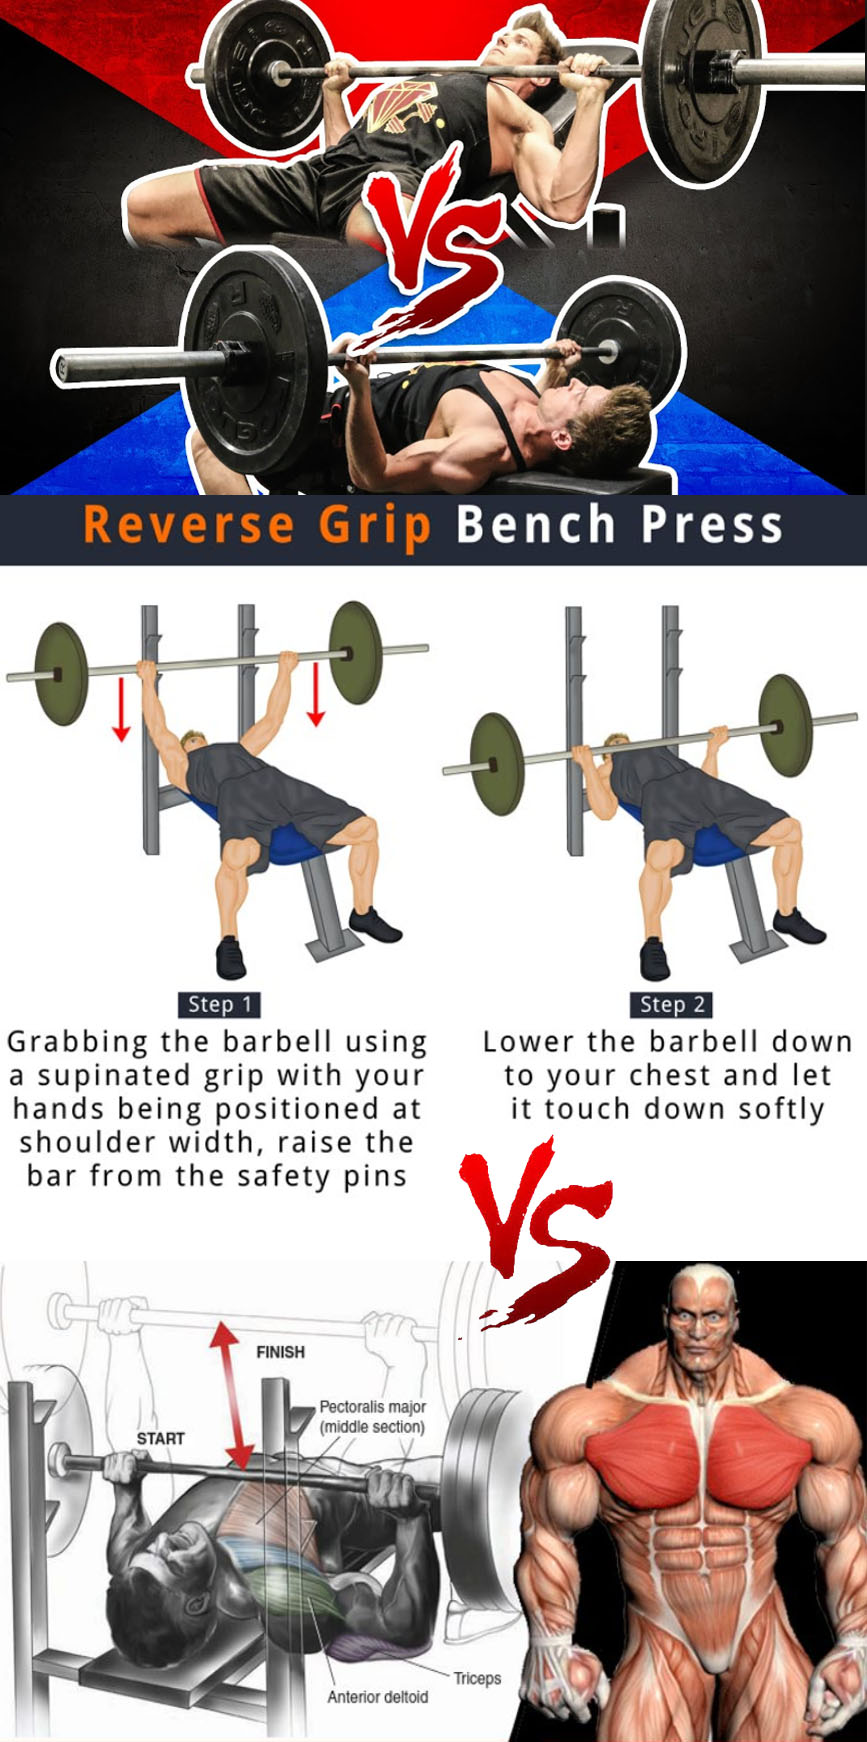 Reverse Grip Bench Press VS Bench Press